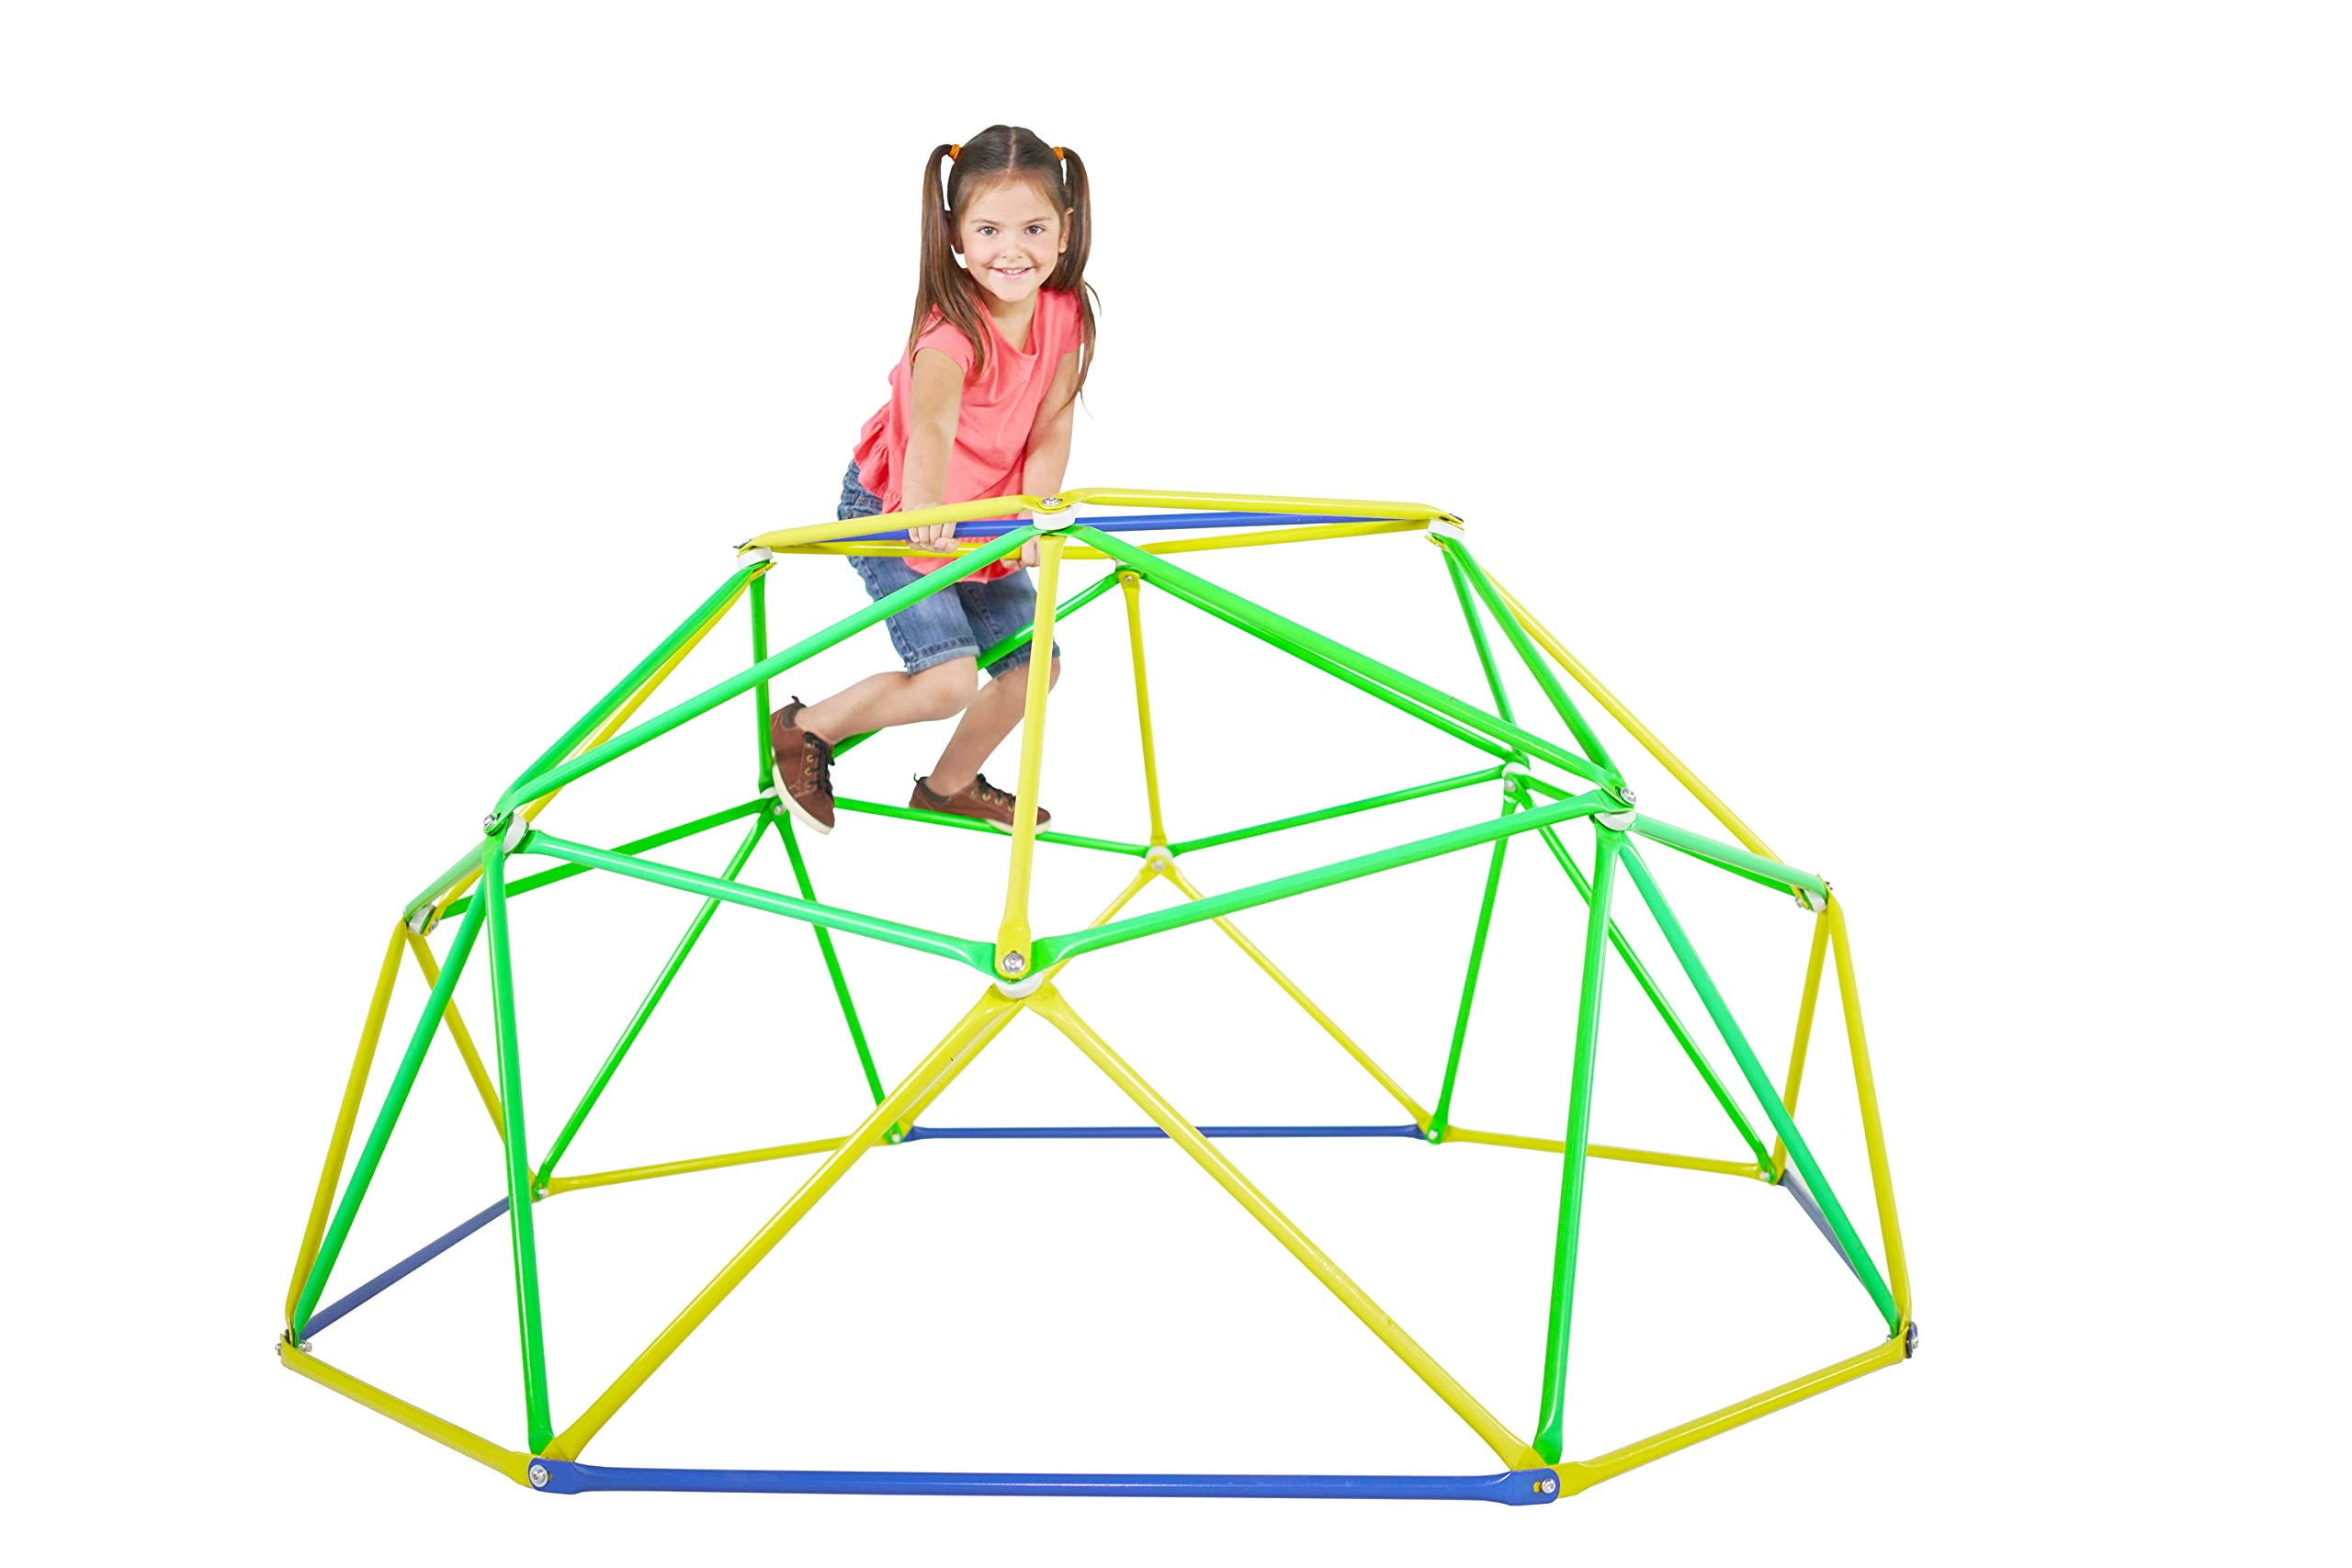 Sportspower Dome Climber with Cover - Outdoor Heavy-Duty Geometric Dome Climber Jungle Gym for Kids